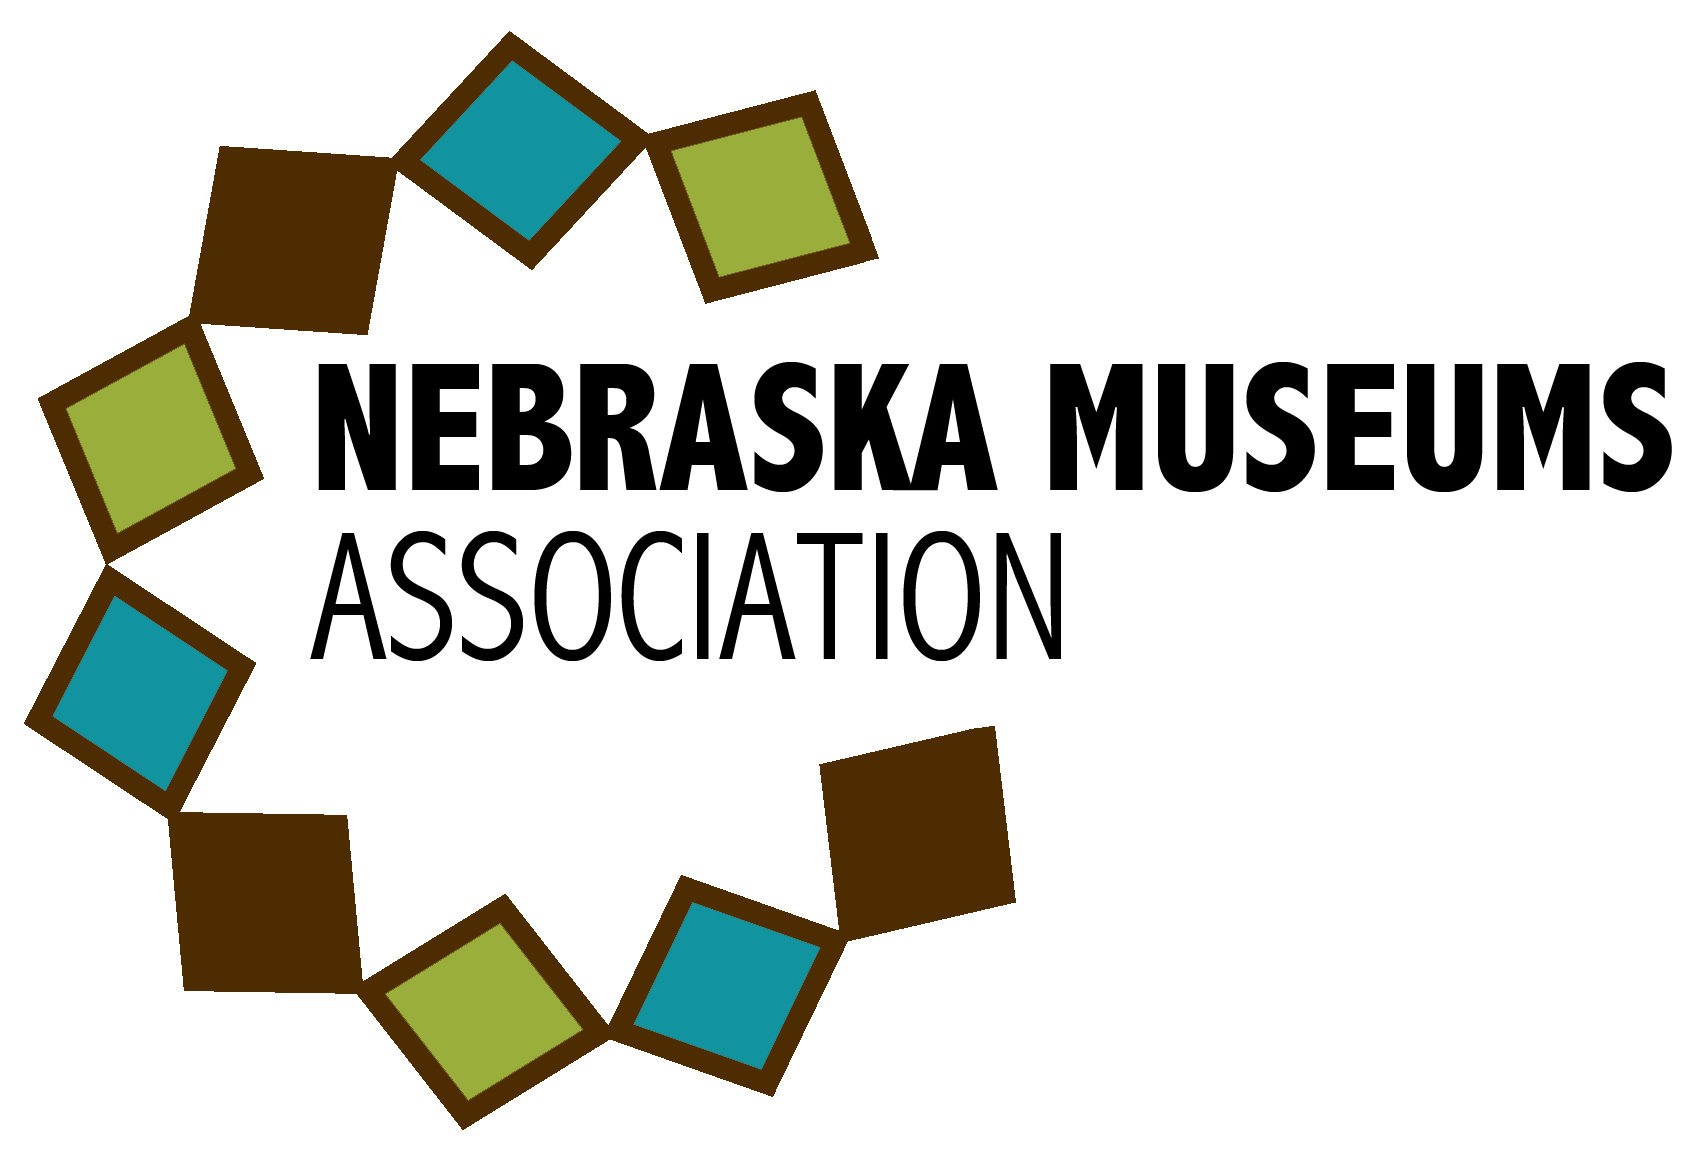 Nebraska Museums Association